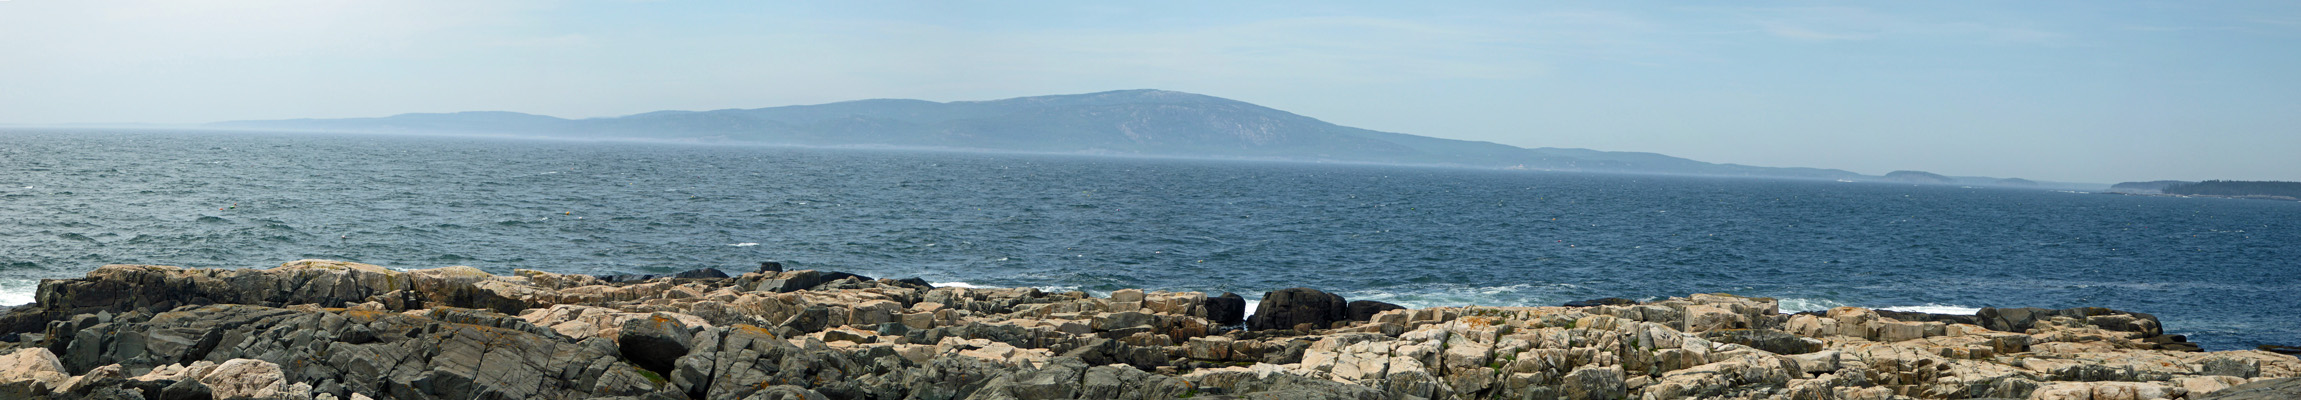 Cadillac Mt from Schoodic Pen.